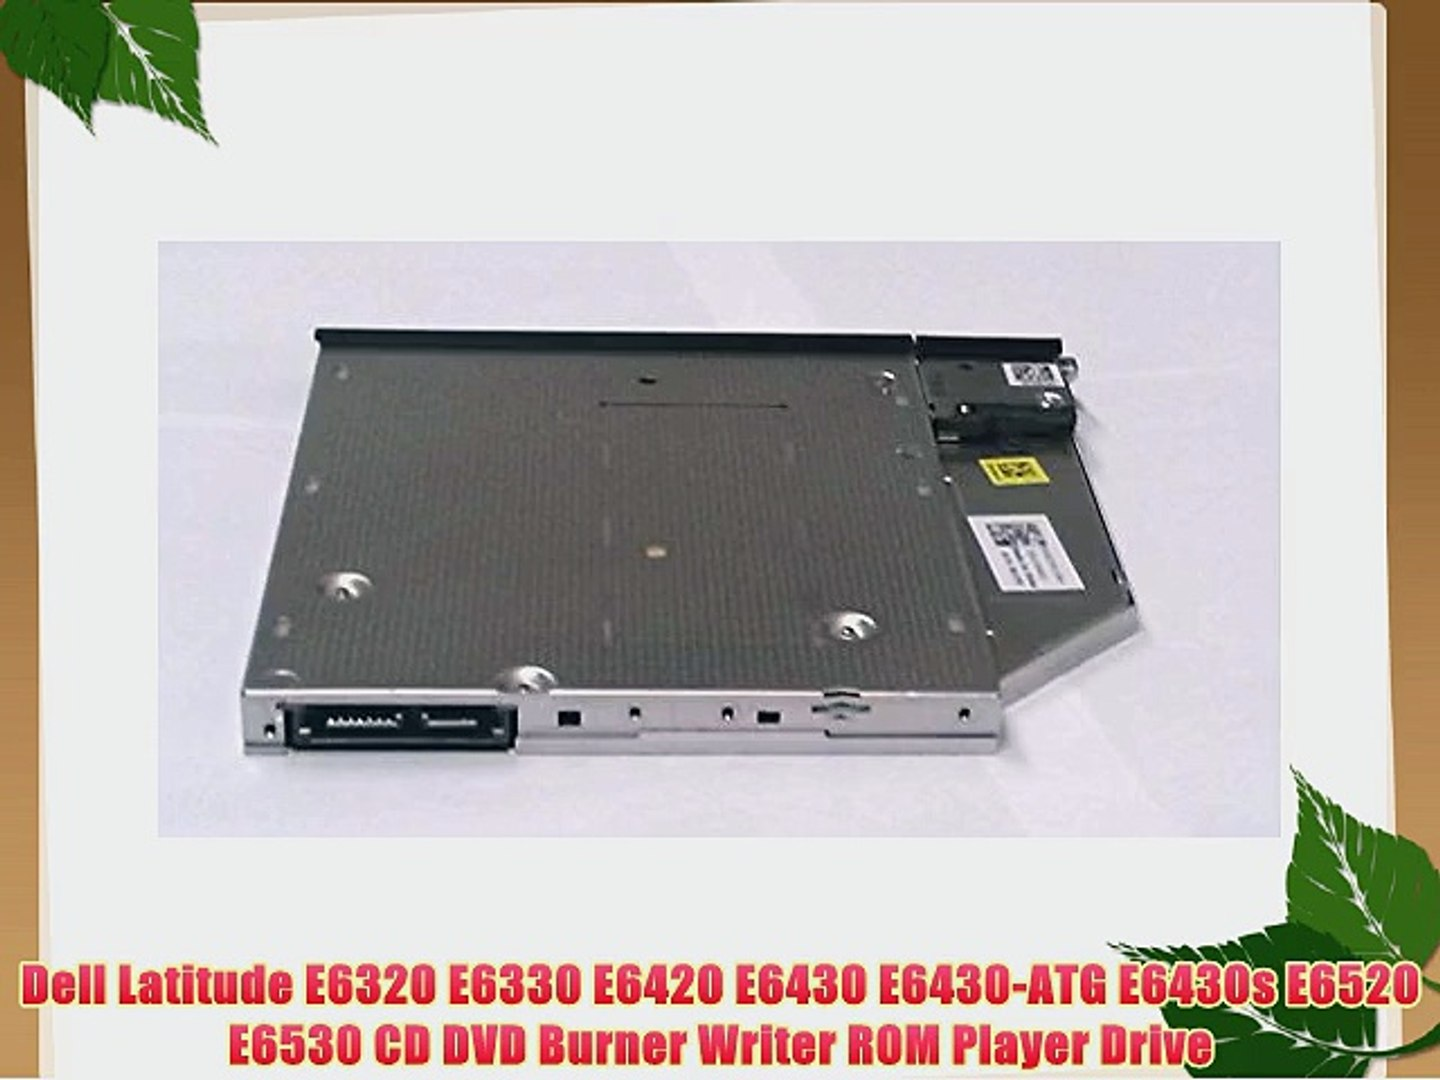 Dell Latitude E6320 E6330 E6420 E6430 E6430-ATG E6430s E6520 E6530 CD DVD  Burner Writer ROM